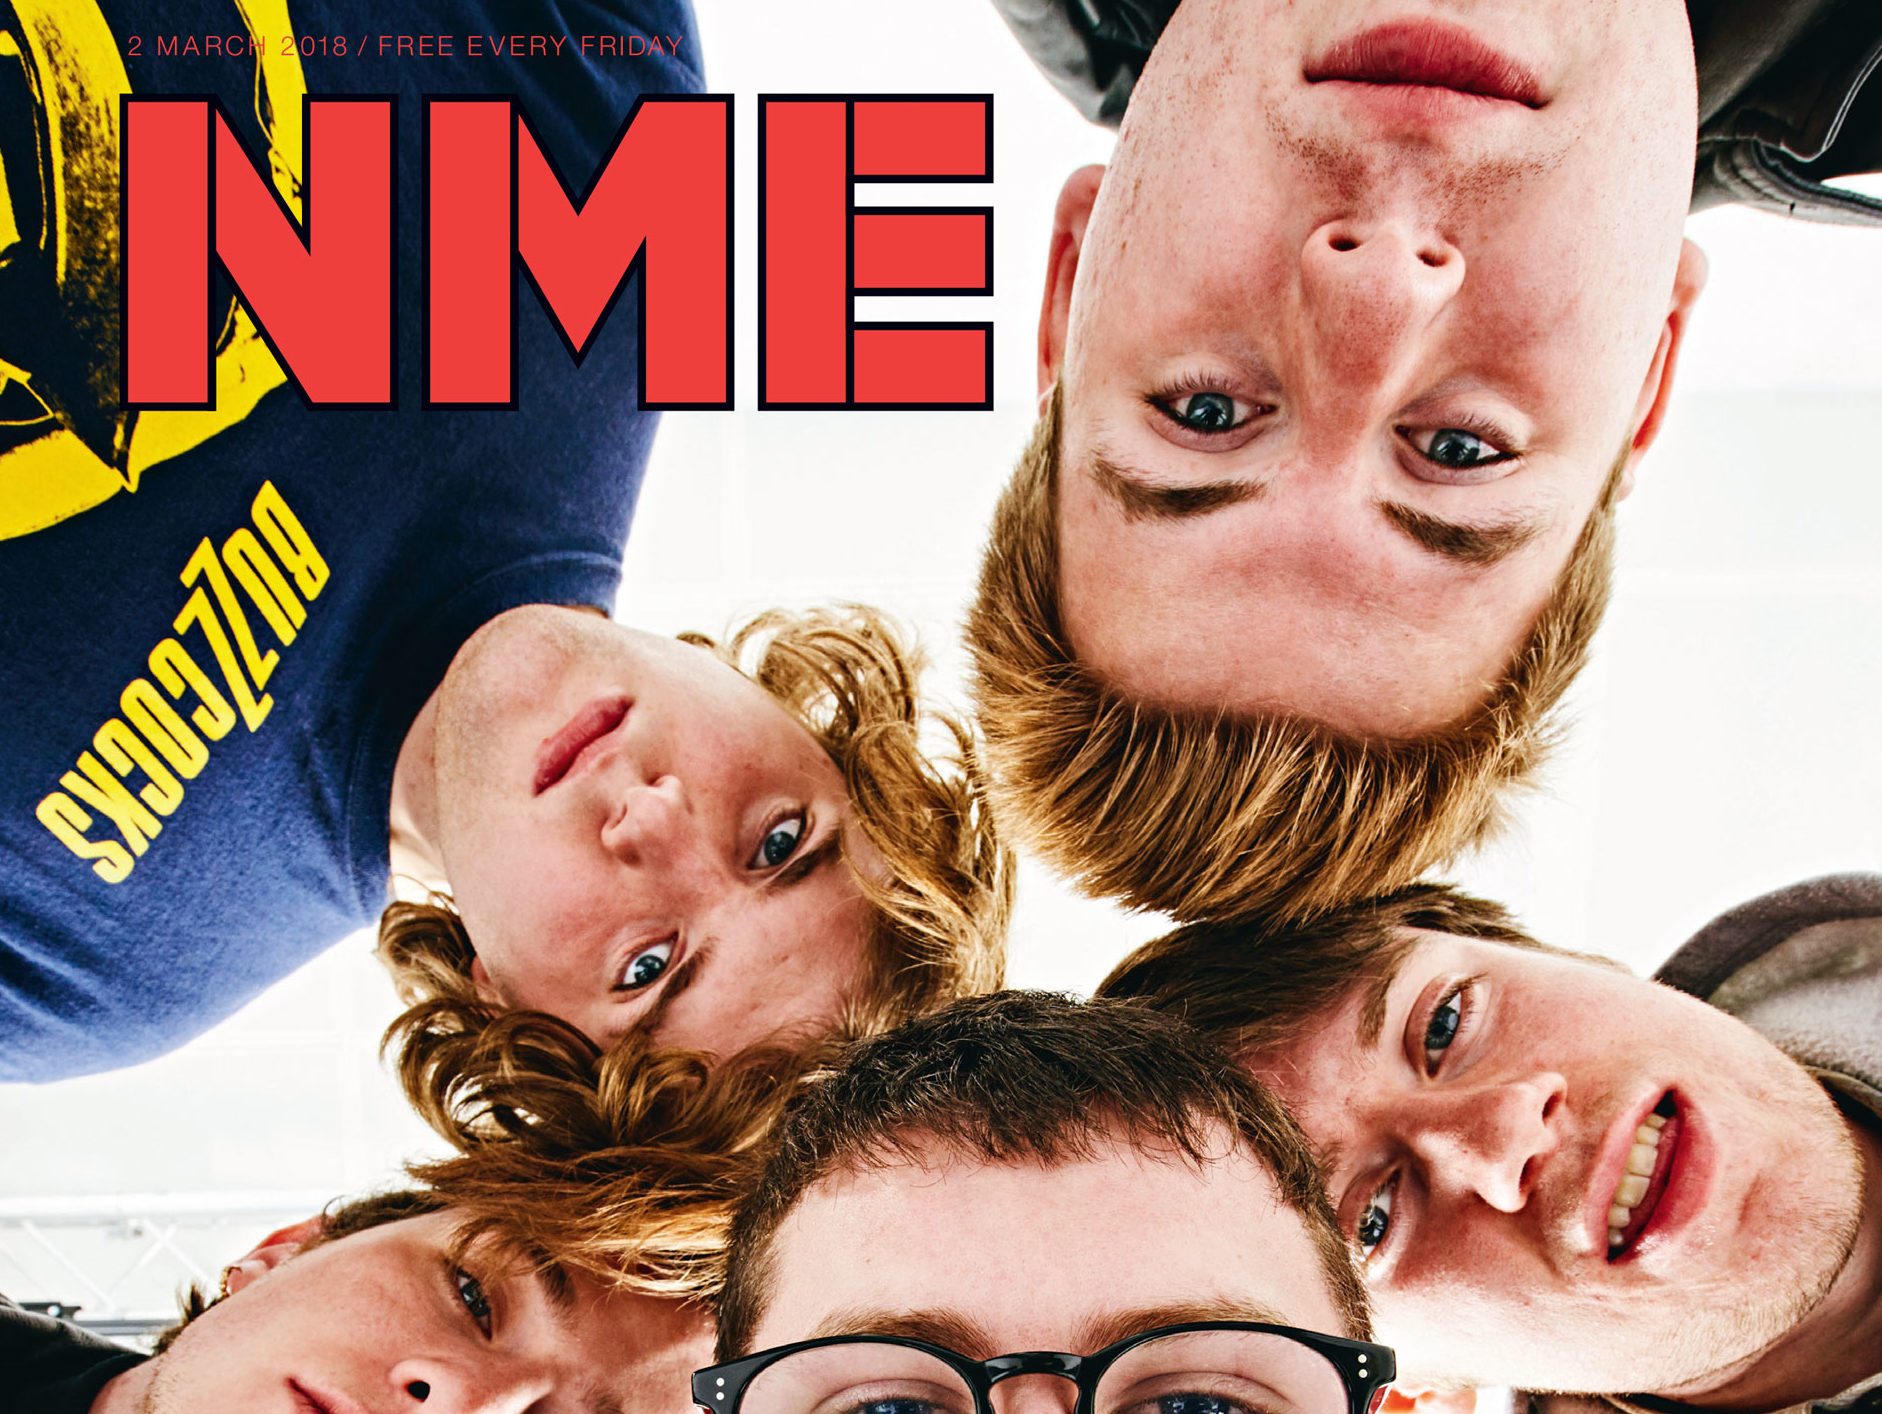 NME to end its regular print edition after over 60 years